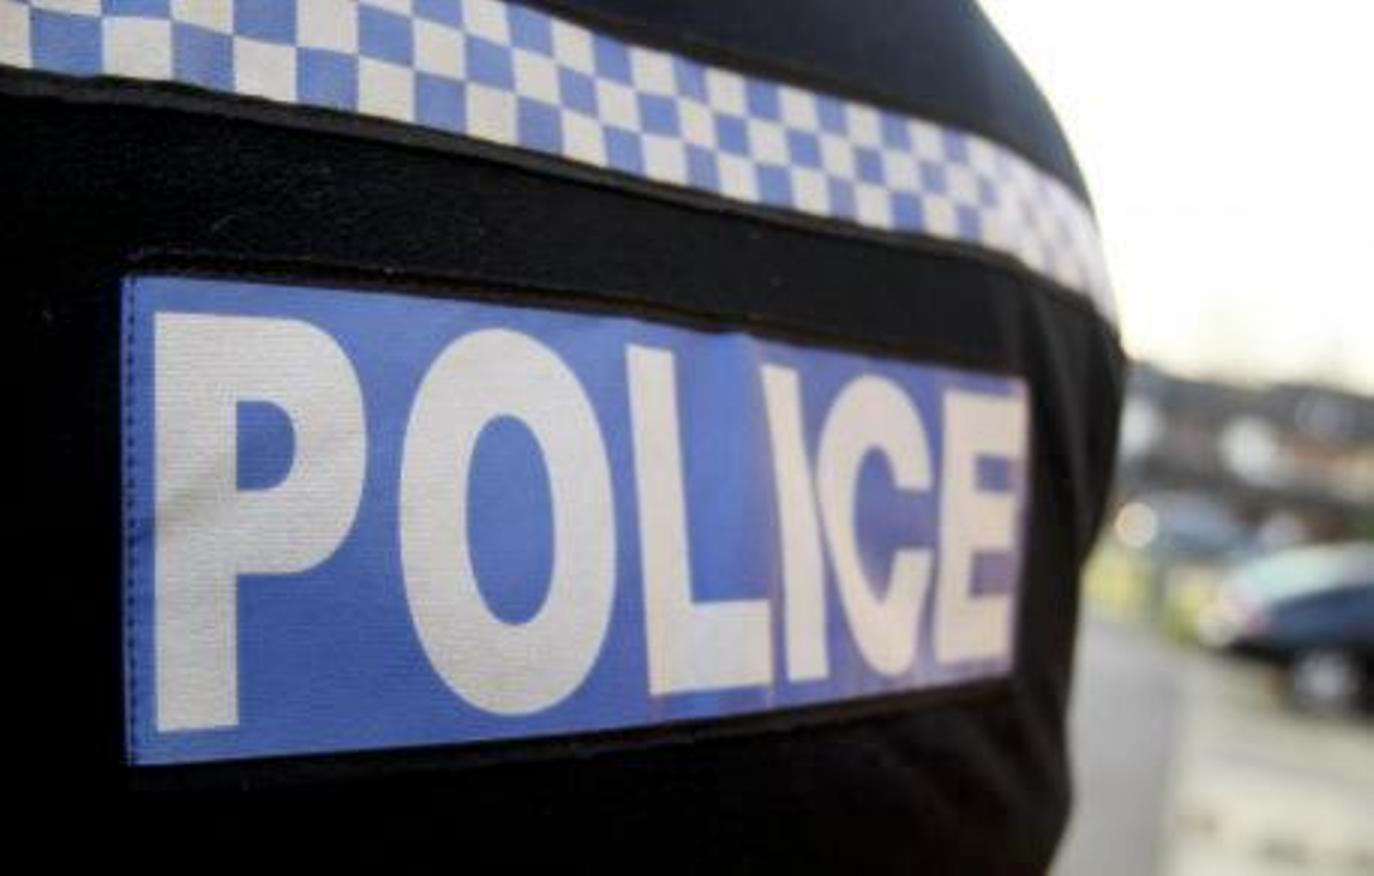 Couple chased and attacked by gang of 15 teens in Pitsea